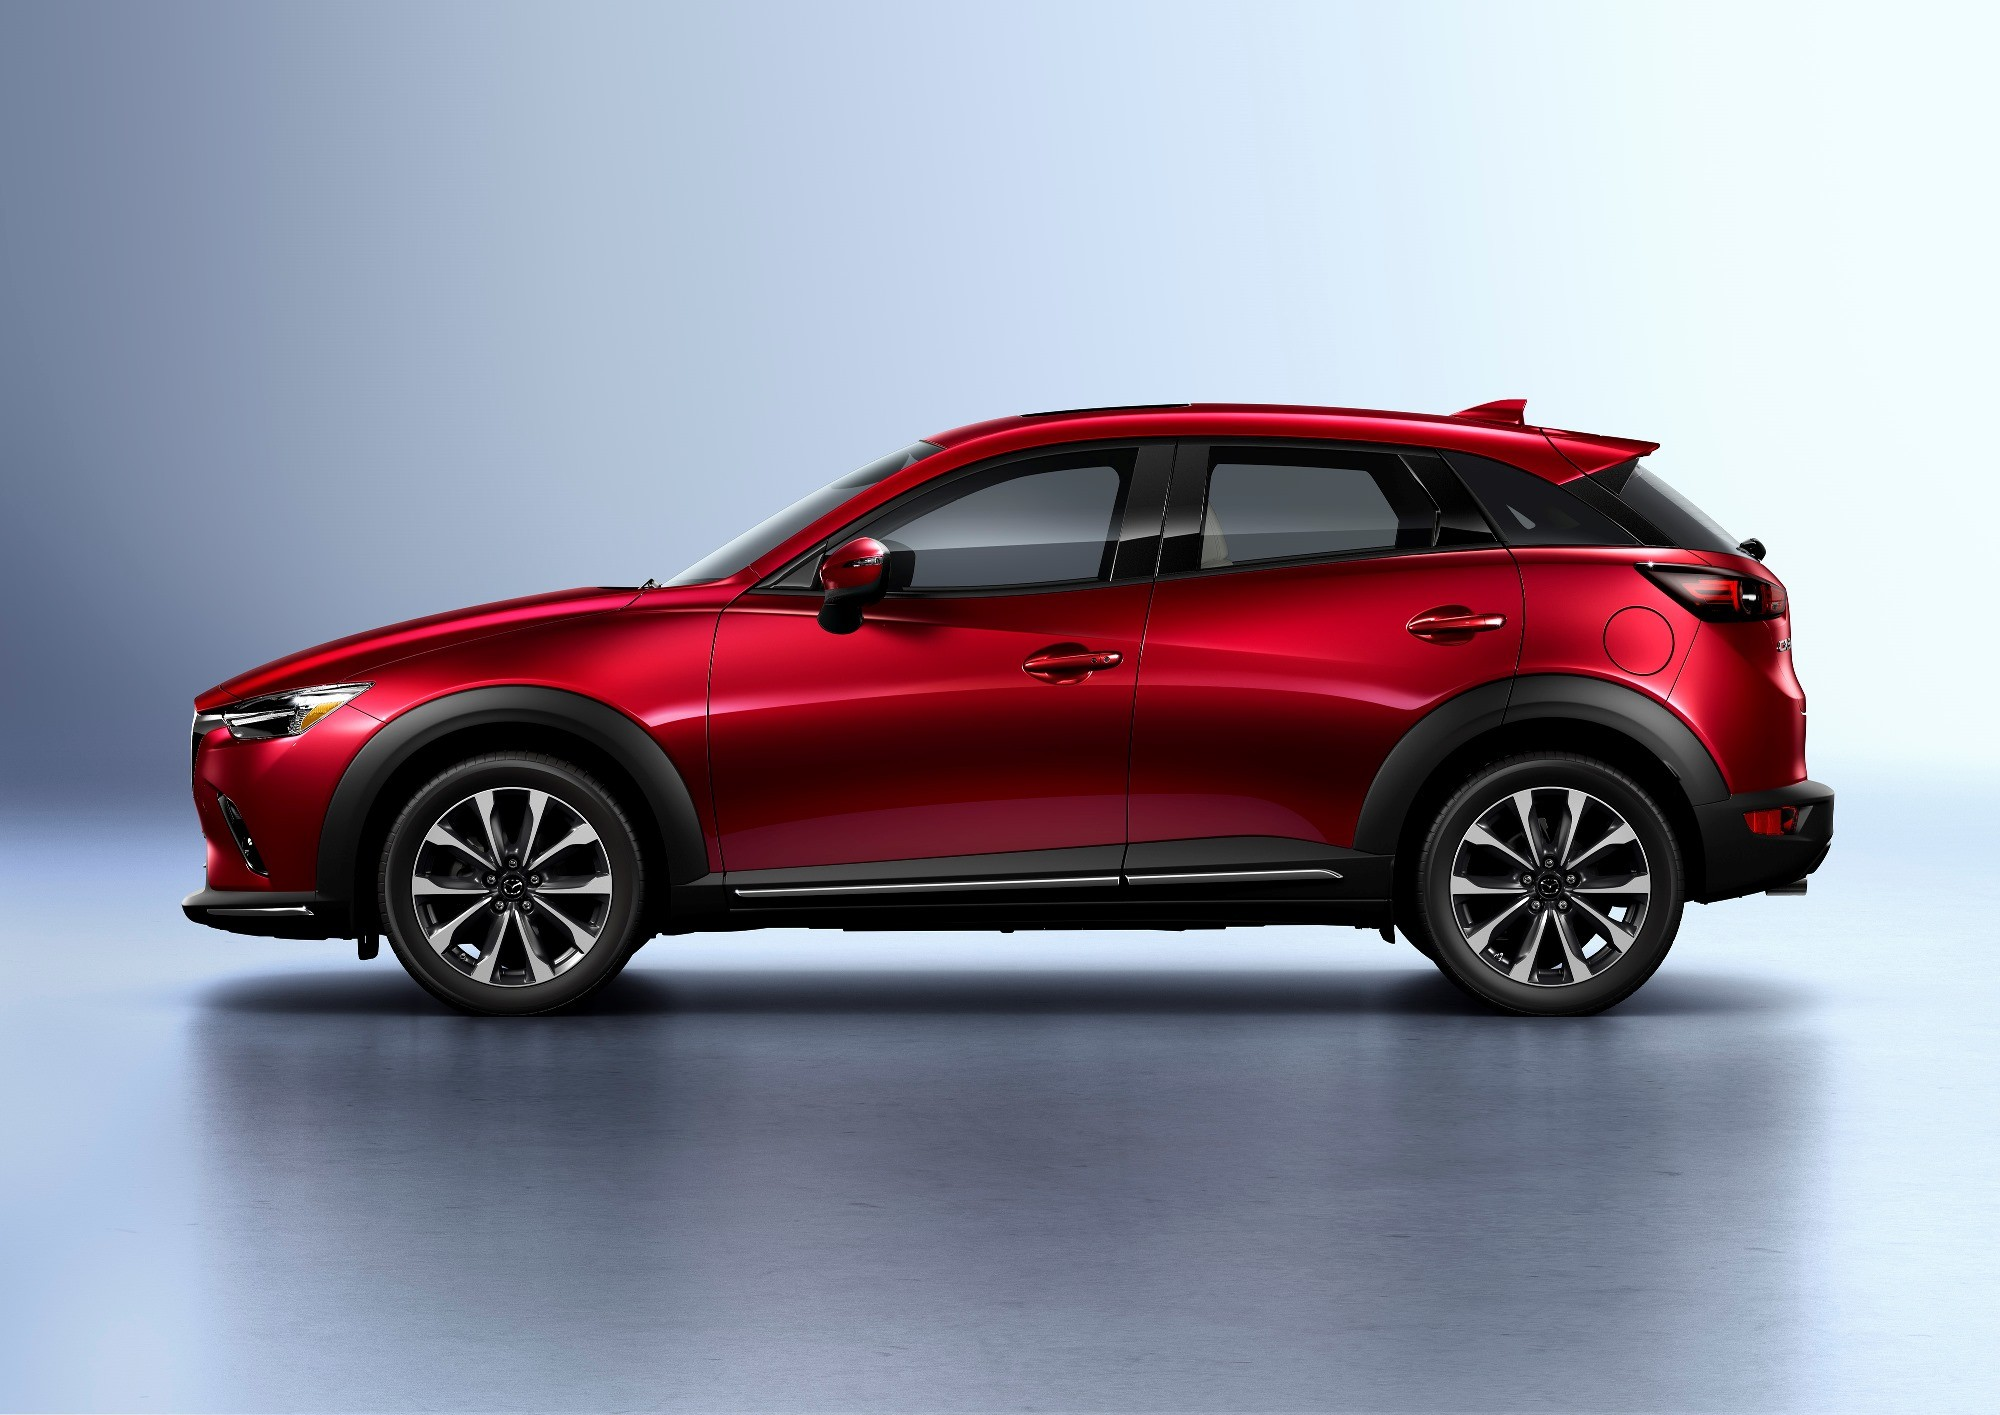 2019 Mazda Cx 3 Priced At 20 390 Promises More Of